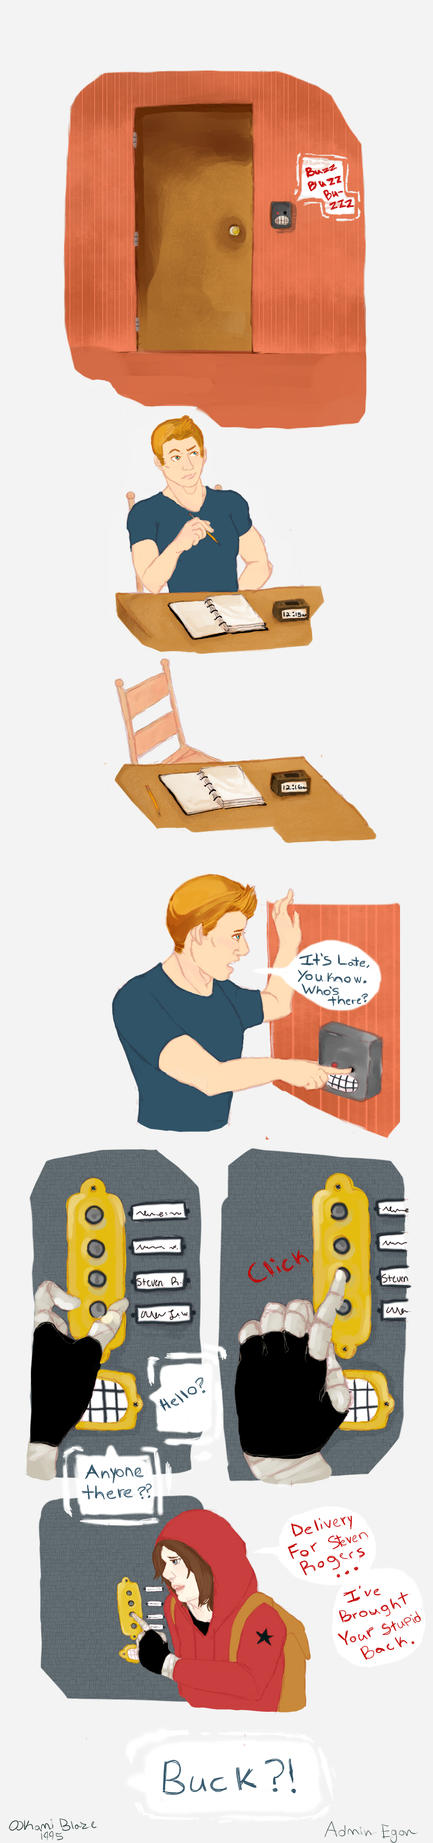 Delivery (Stucky comic) by Ookami-Blaze1995